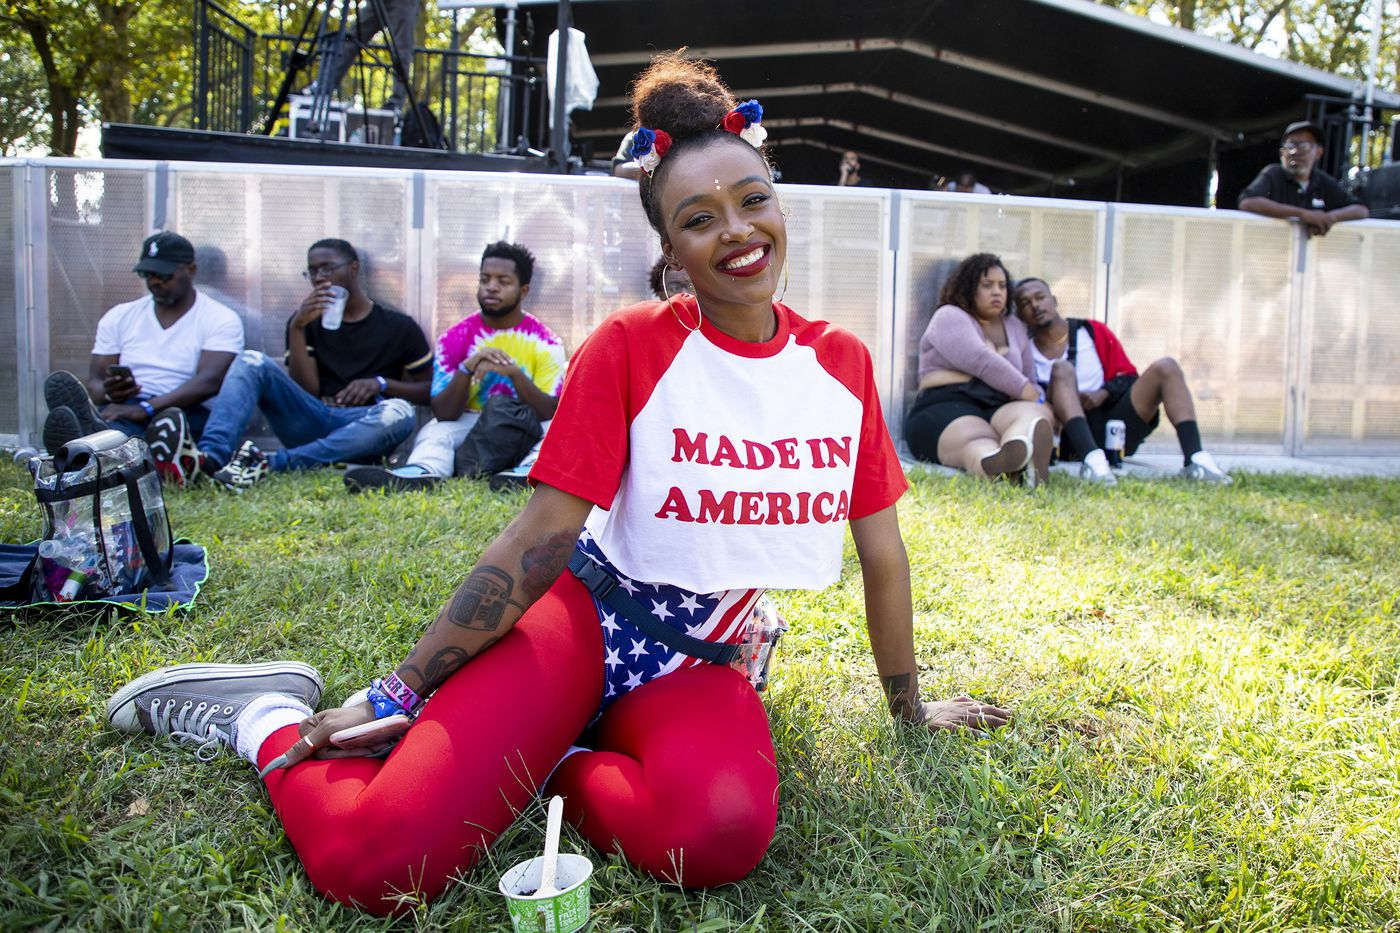 """Ronnae Beech, 28, of San Diego, Cali., came down to Made in America for her fourth year and is listening to Jorja Smith at the Liberty stage on the first day of the Made in America Festival on the Benjamin Franklin Parkway in Philadelphia on Saturday, Aug. 31, 2019. Beech is wearing a Made in America cropped t-shirt she found on Pretty Little Thing women's fashion clothing and a American Flag body suit with red stockings. """"At this point I feel like it's tradition,"""" Beech said. """"I love Philly and I have a great time every time I come here."""""""